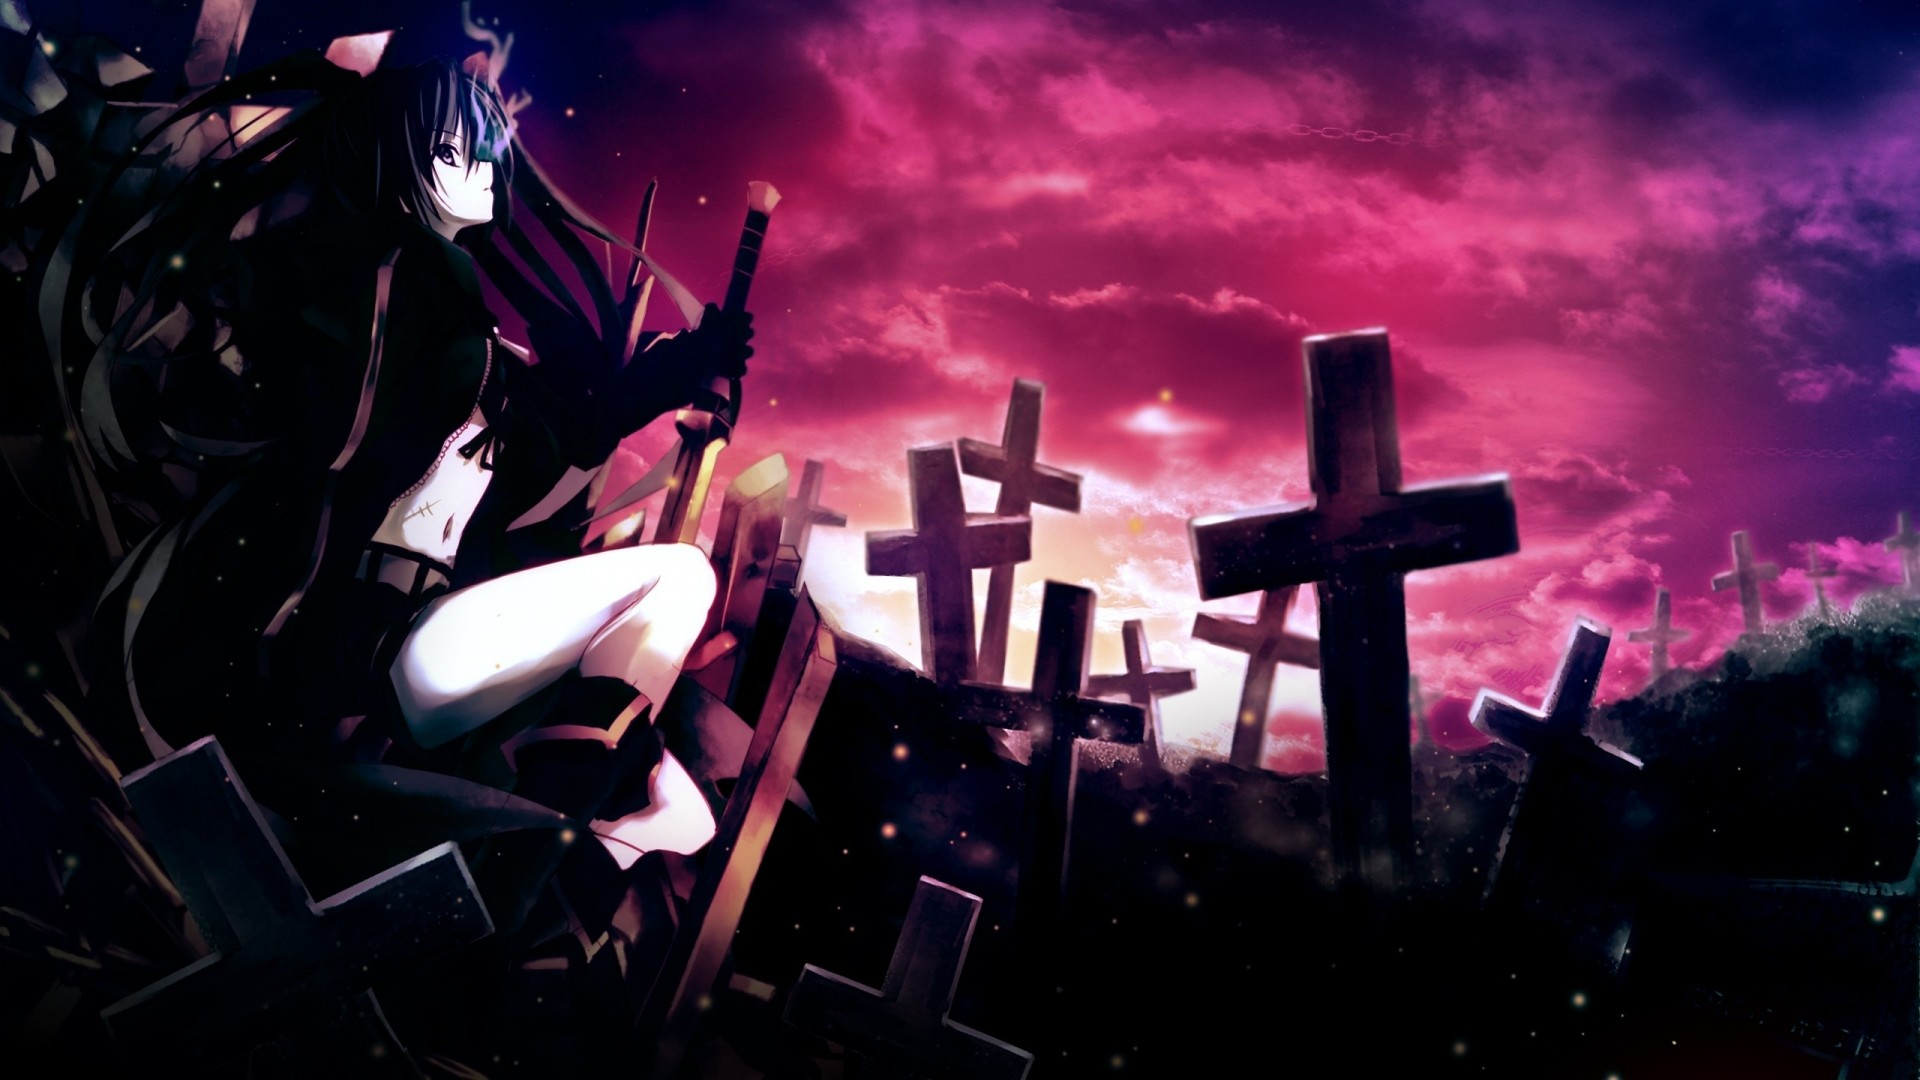 Wallpaper anime, girl, thoughtful, sword, cemetery, darkness